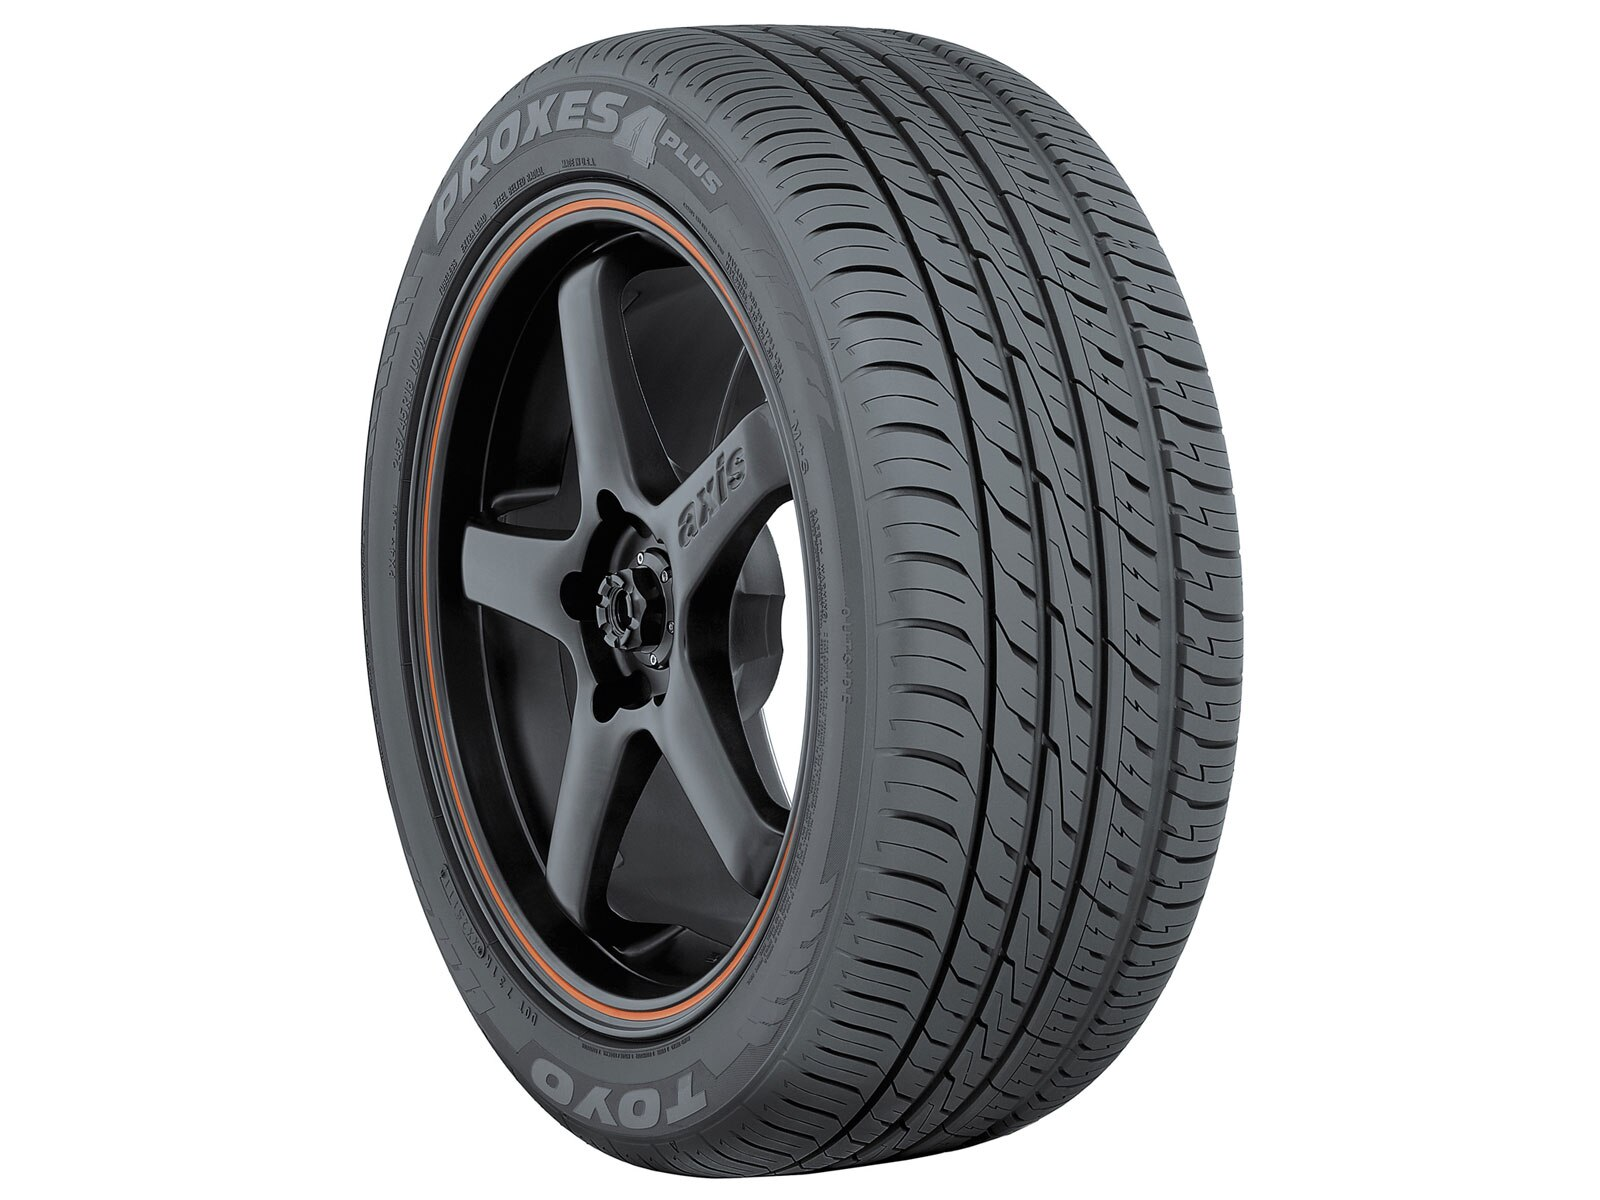 1302-lrmp-01-ps-proxes-4-plus-tires